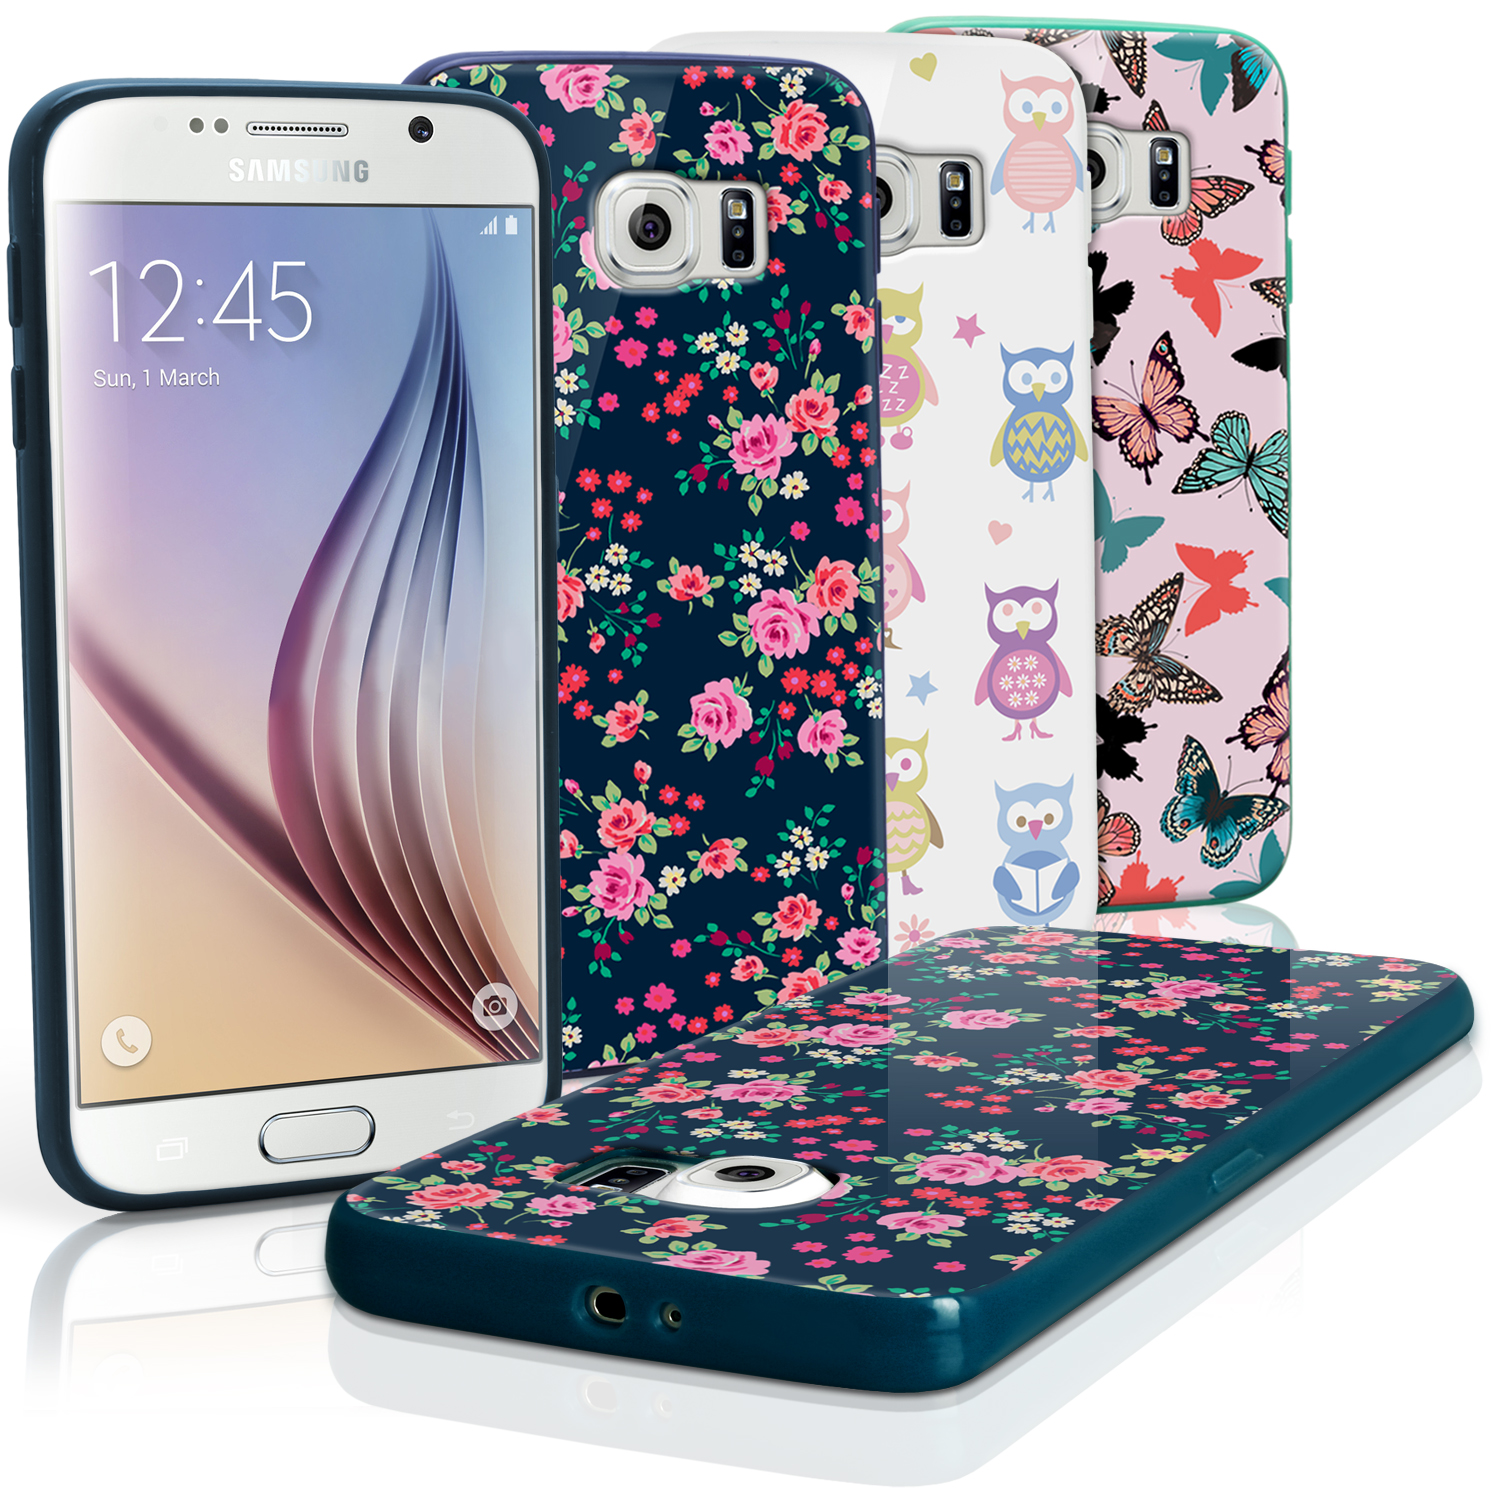 """iGadgitz """"Designer Collection"""" Glossy TPU Gel Skin Case Cover for Samsung Galaxy S6 SM-G920 + Screen Protector"""